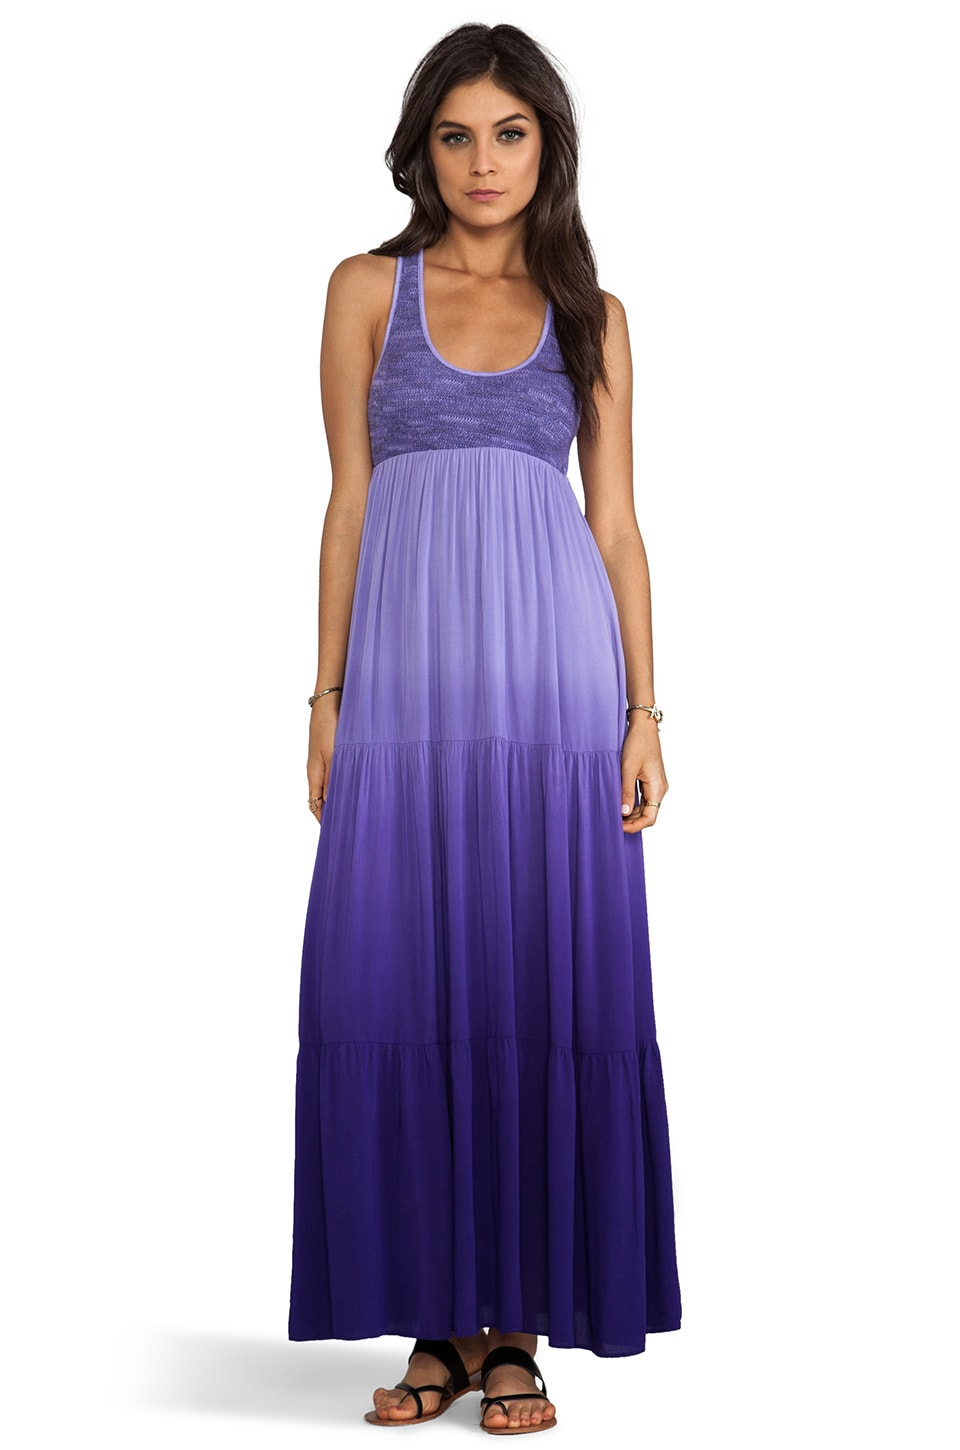 WOODLEIGH Blayke Ombre Maxi Dress in Grape